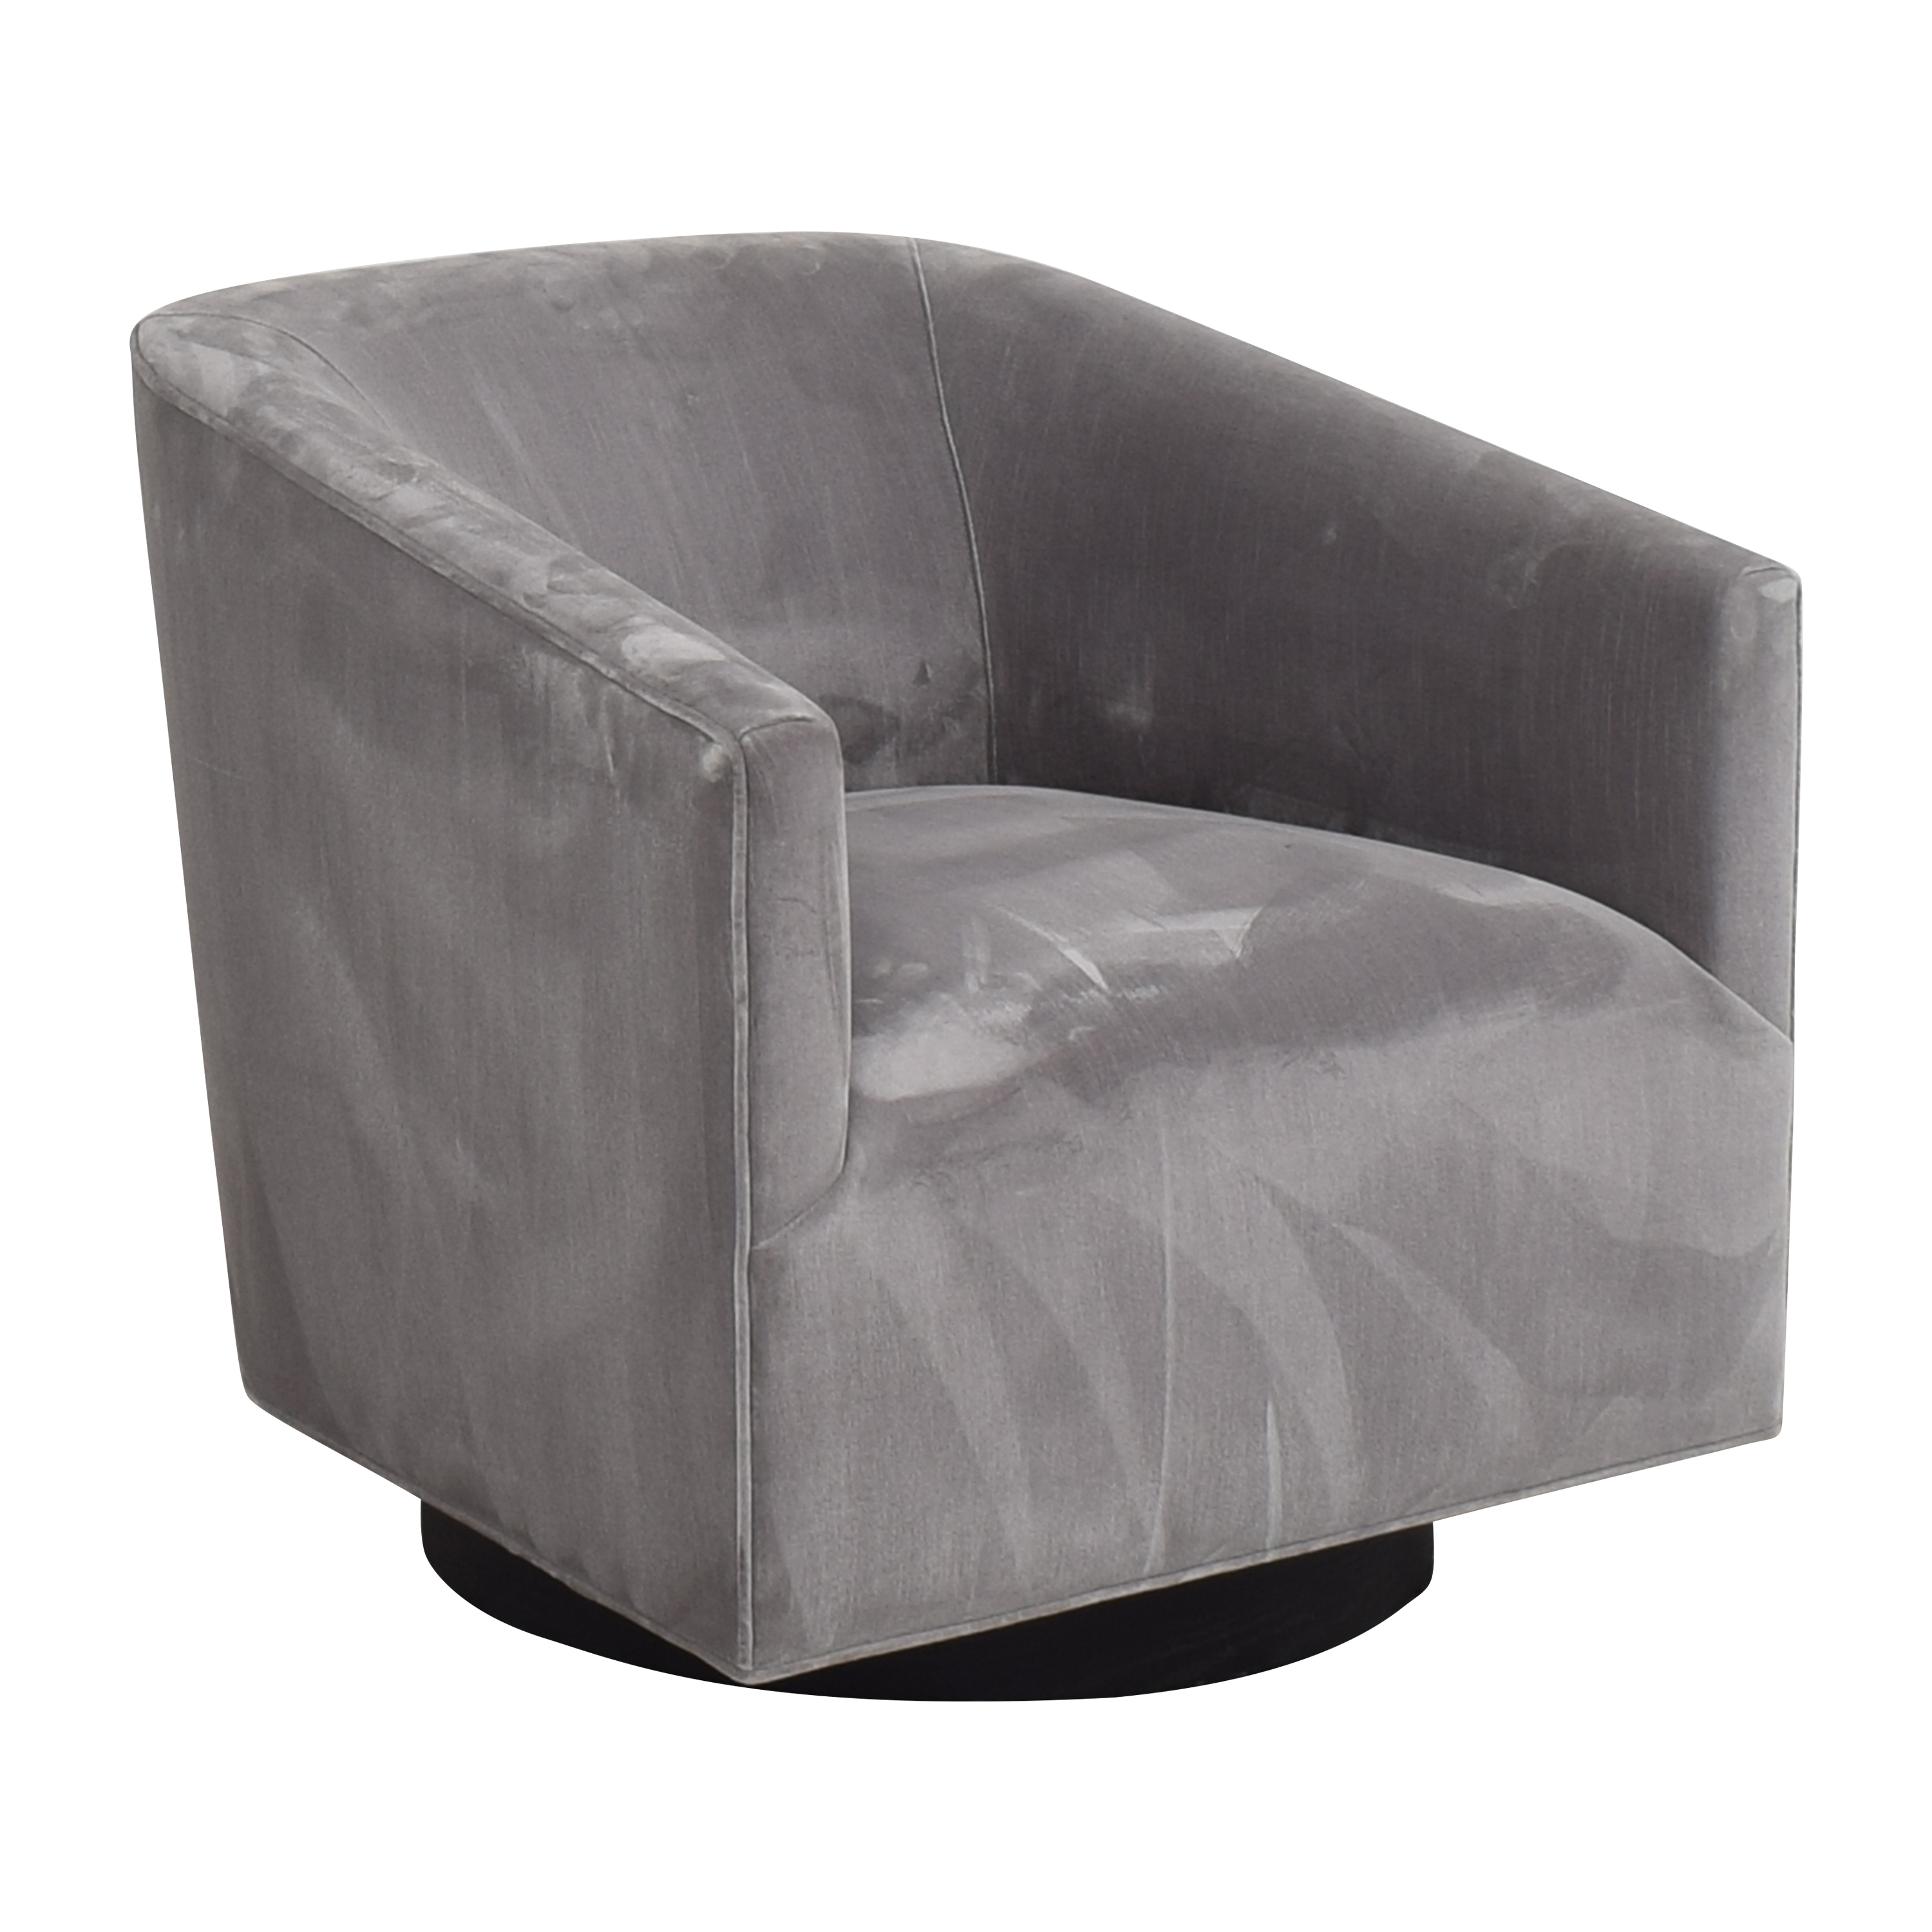 Restoration Hardware Restoration Hardware 1950s Italian Shelter Arm Swivel Chair price